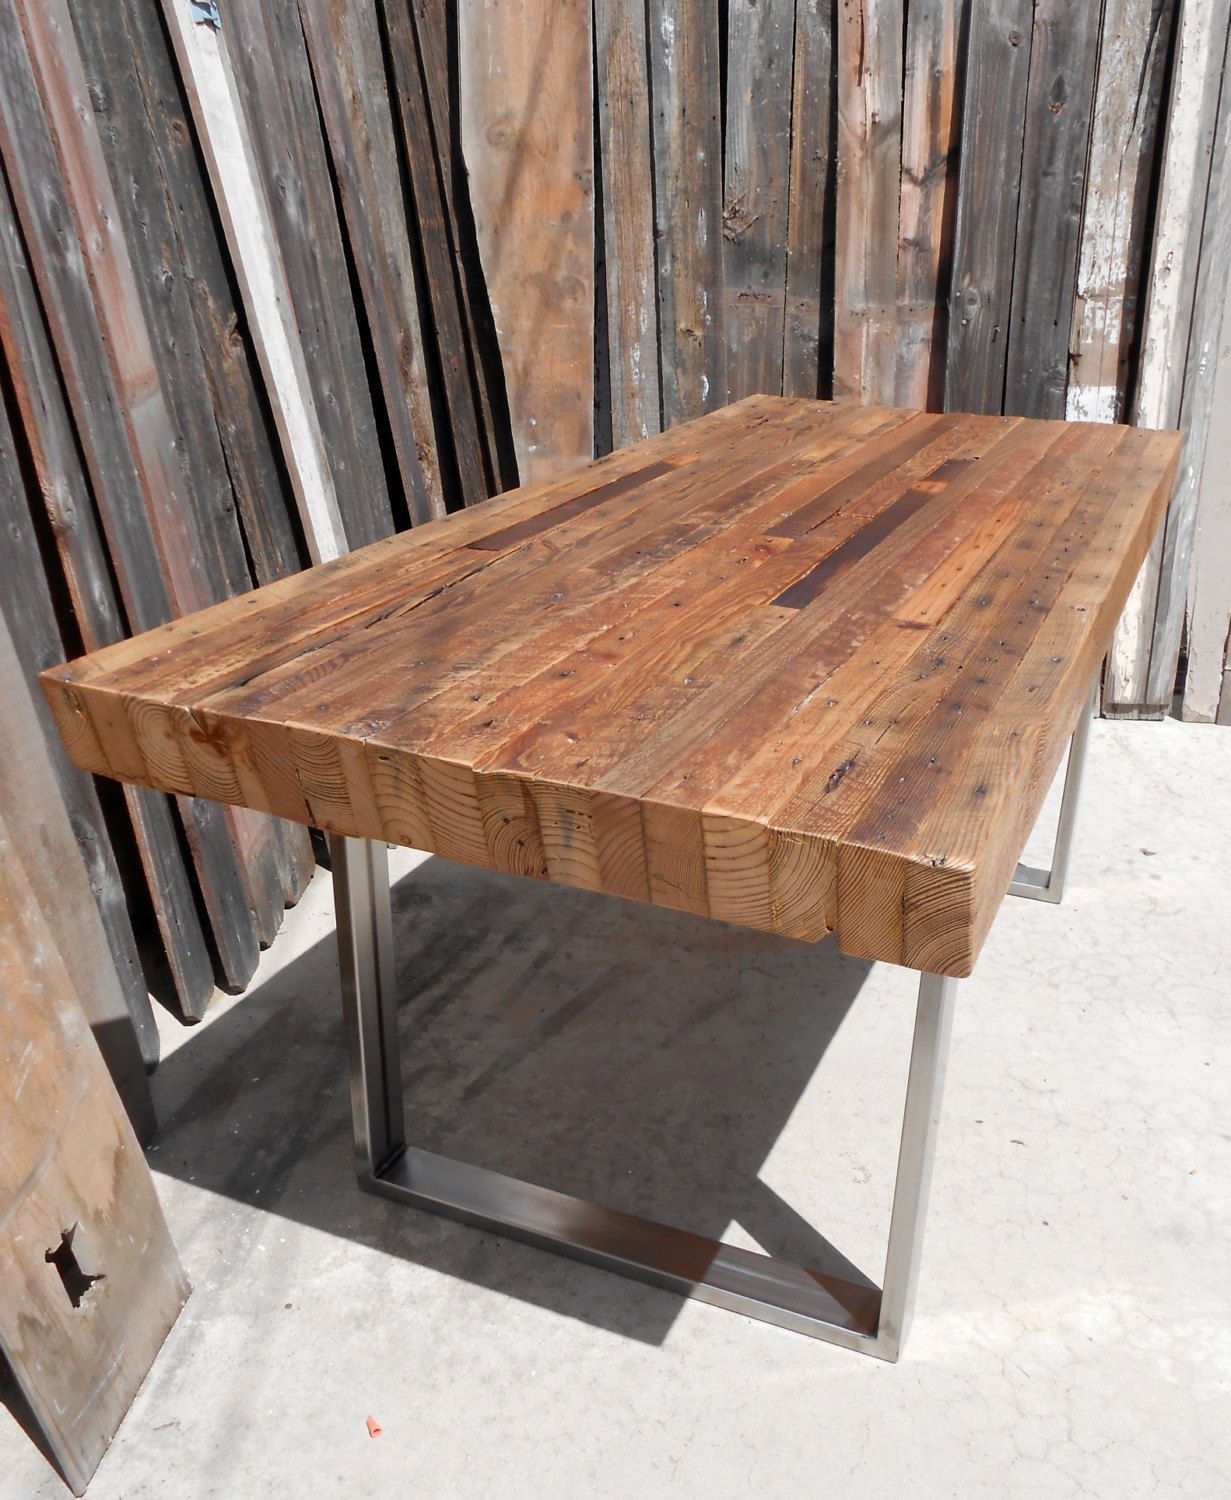 Custom outdoor indoor exposed edge rustic industrial reclaimed wood